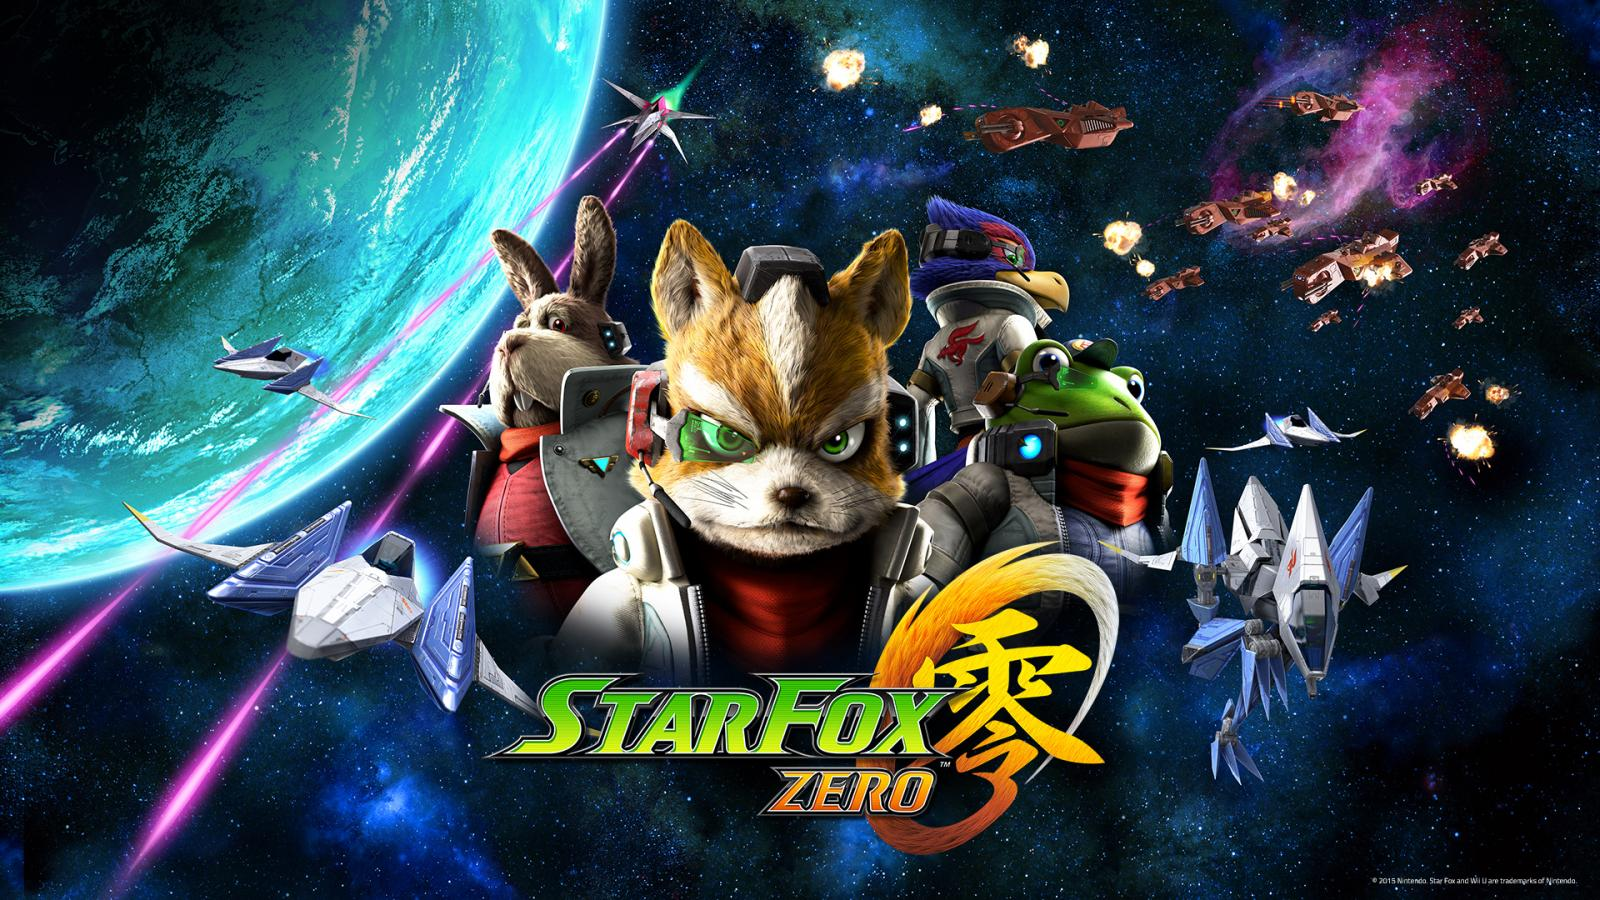 star-fox-zero-wallpaper-03-1920x1080.jpg